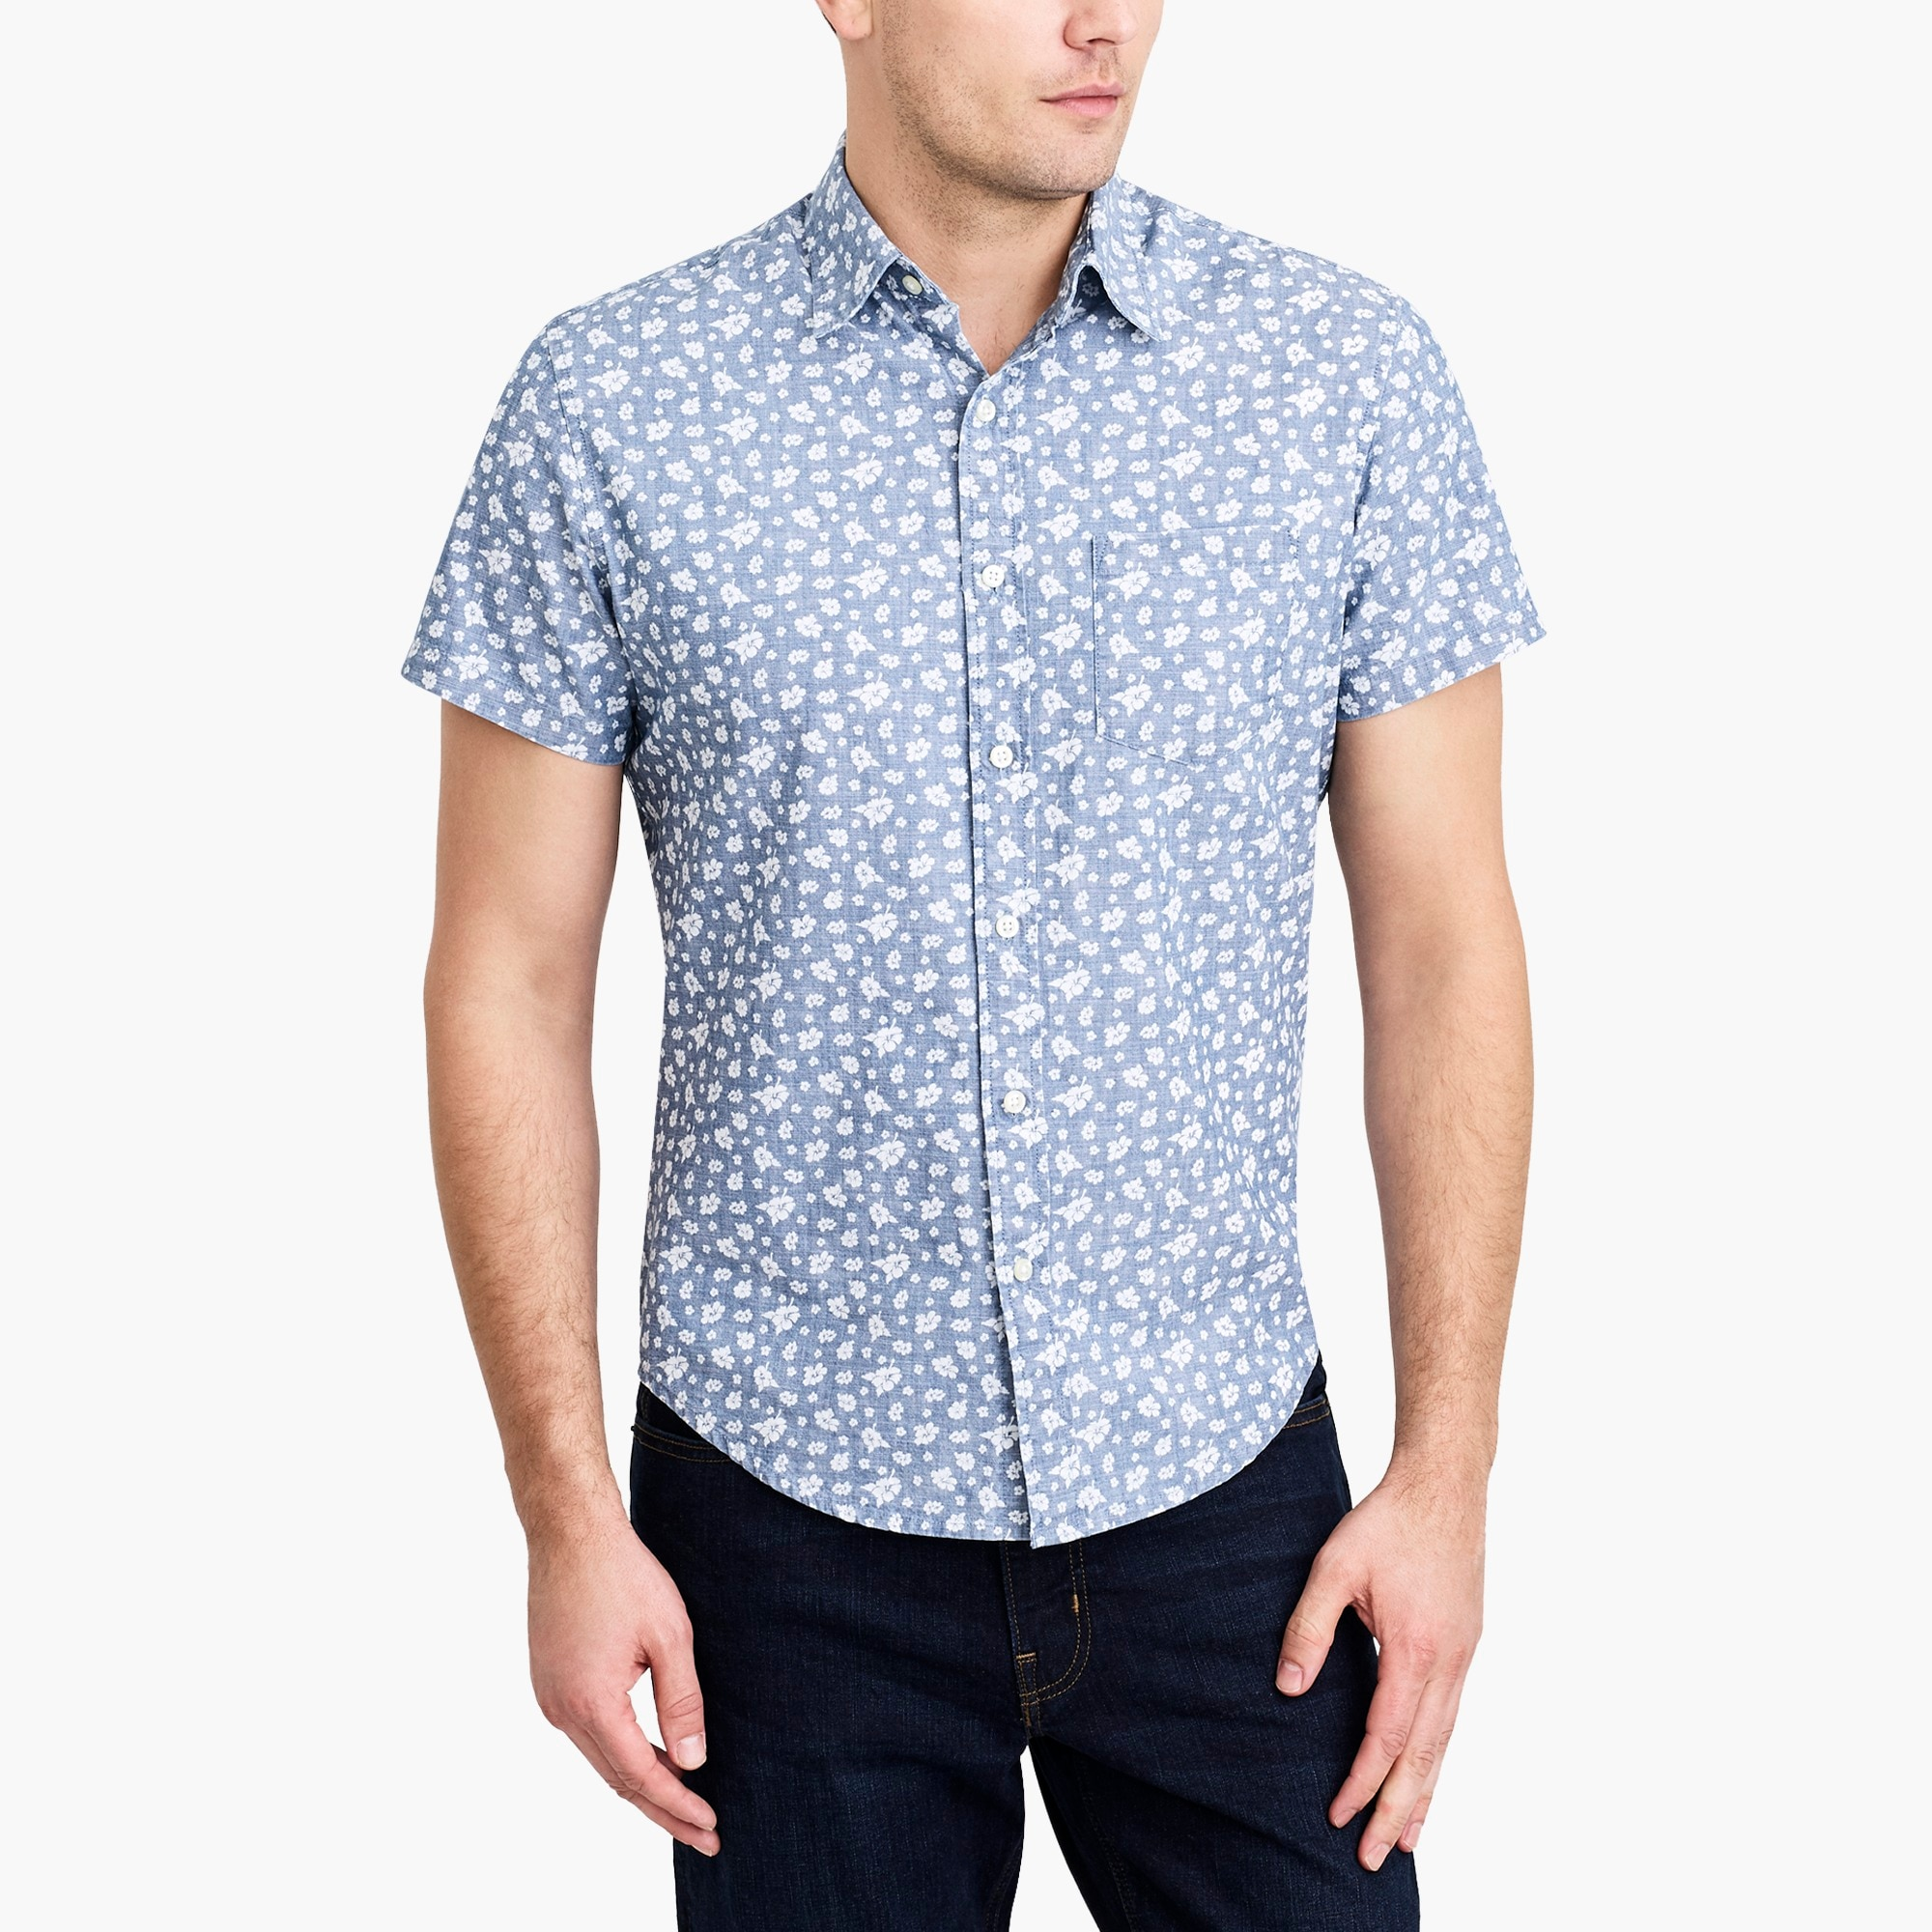 Image 1 for Slim short-sleeve printed chambray shirt